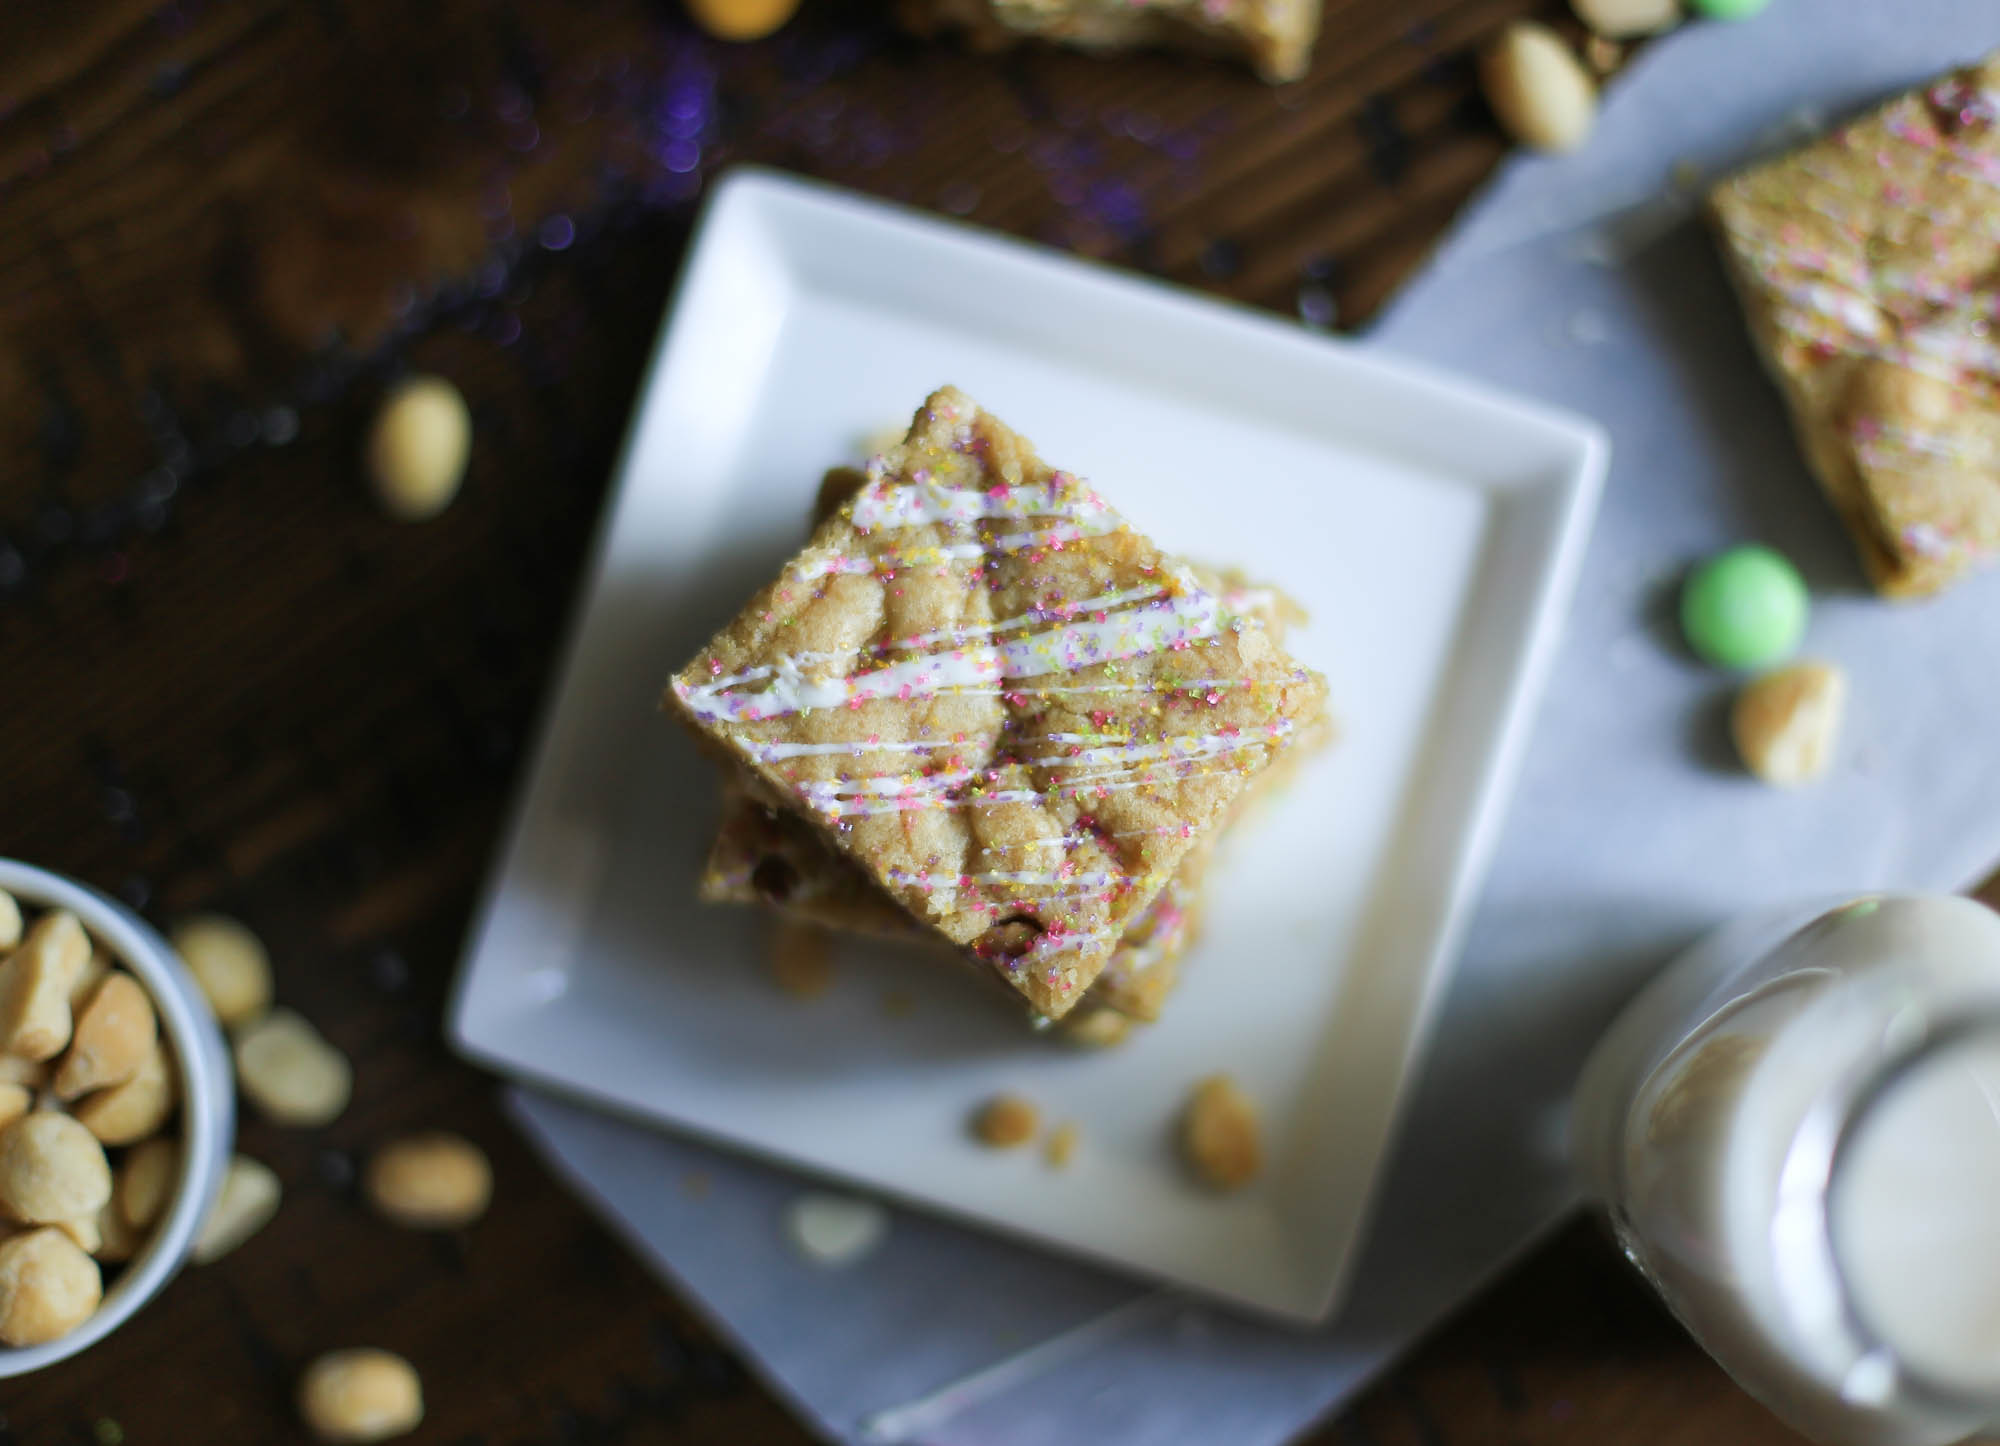 White Chocolate Macadamia Nut Bars by The District Table